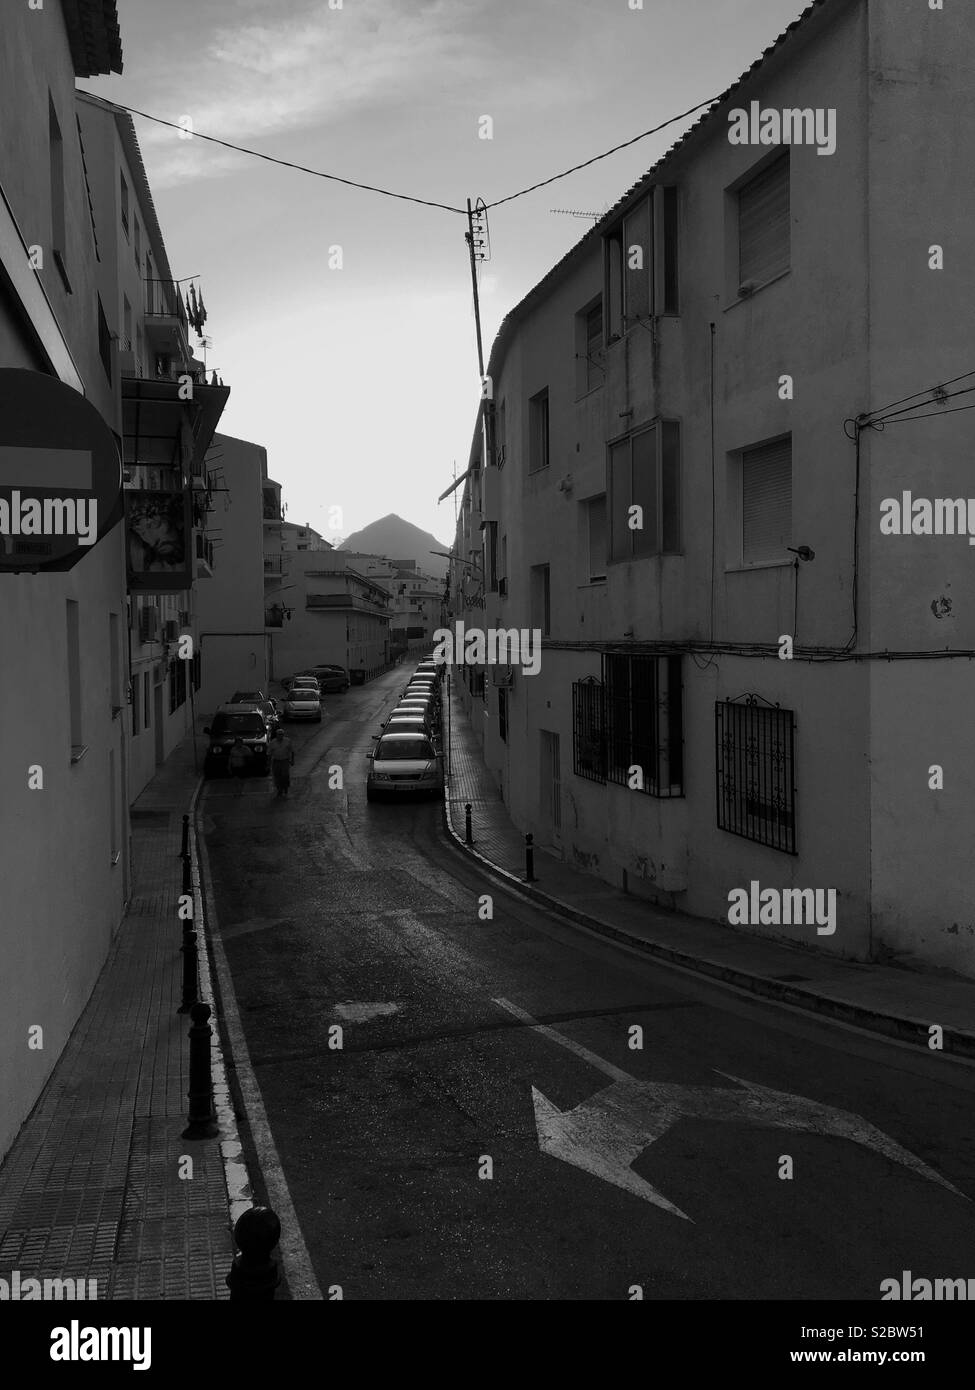 Street with parked Cars in the Town of Altea, Costa Blanca Spain. Black and White. - Stock Image